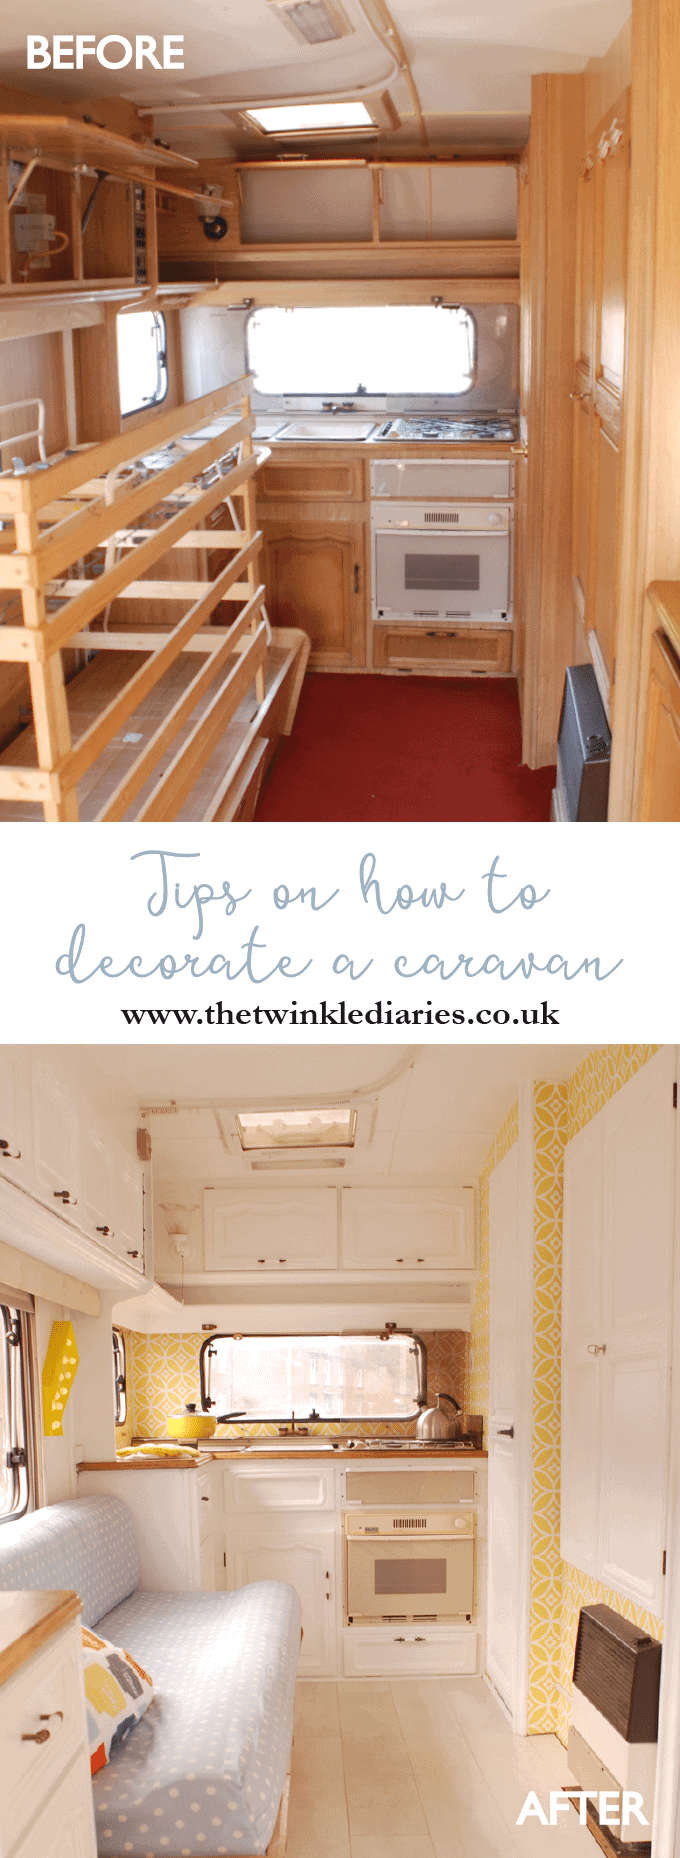 Tips on Decorating a Caravan by The Twinkle Diaries